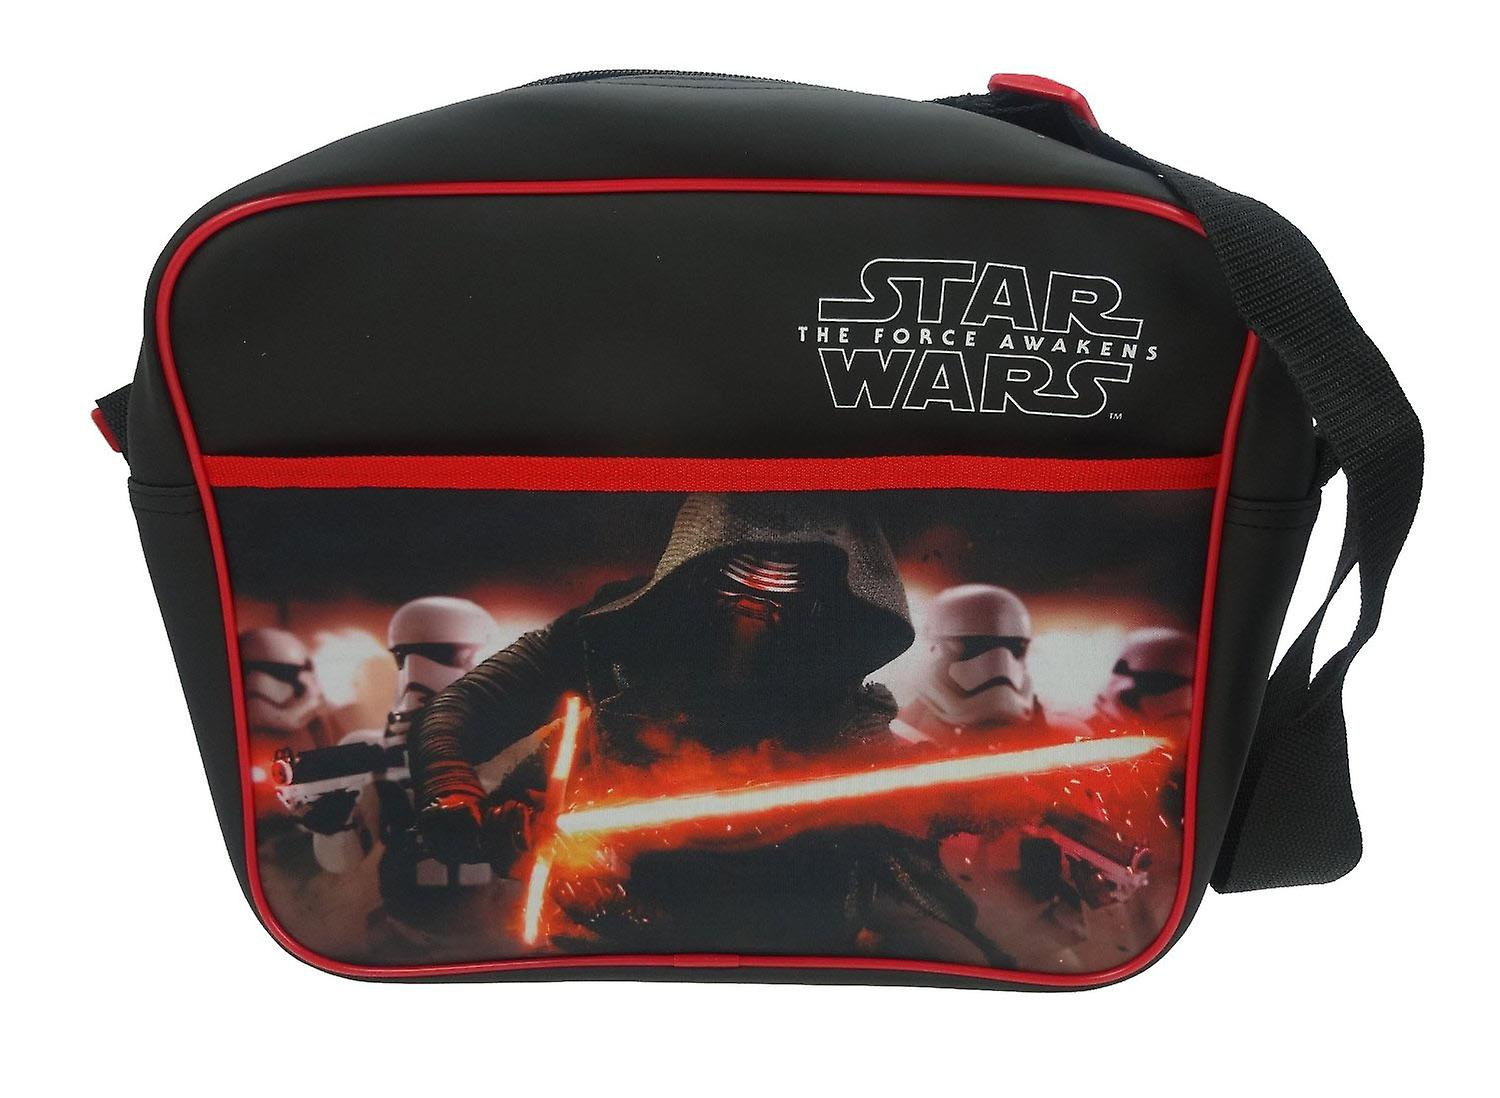 Star Wars Episode 7 The Force Awakens Rule the Galaxy Courier Messenger Bag